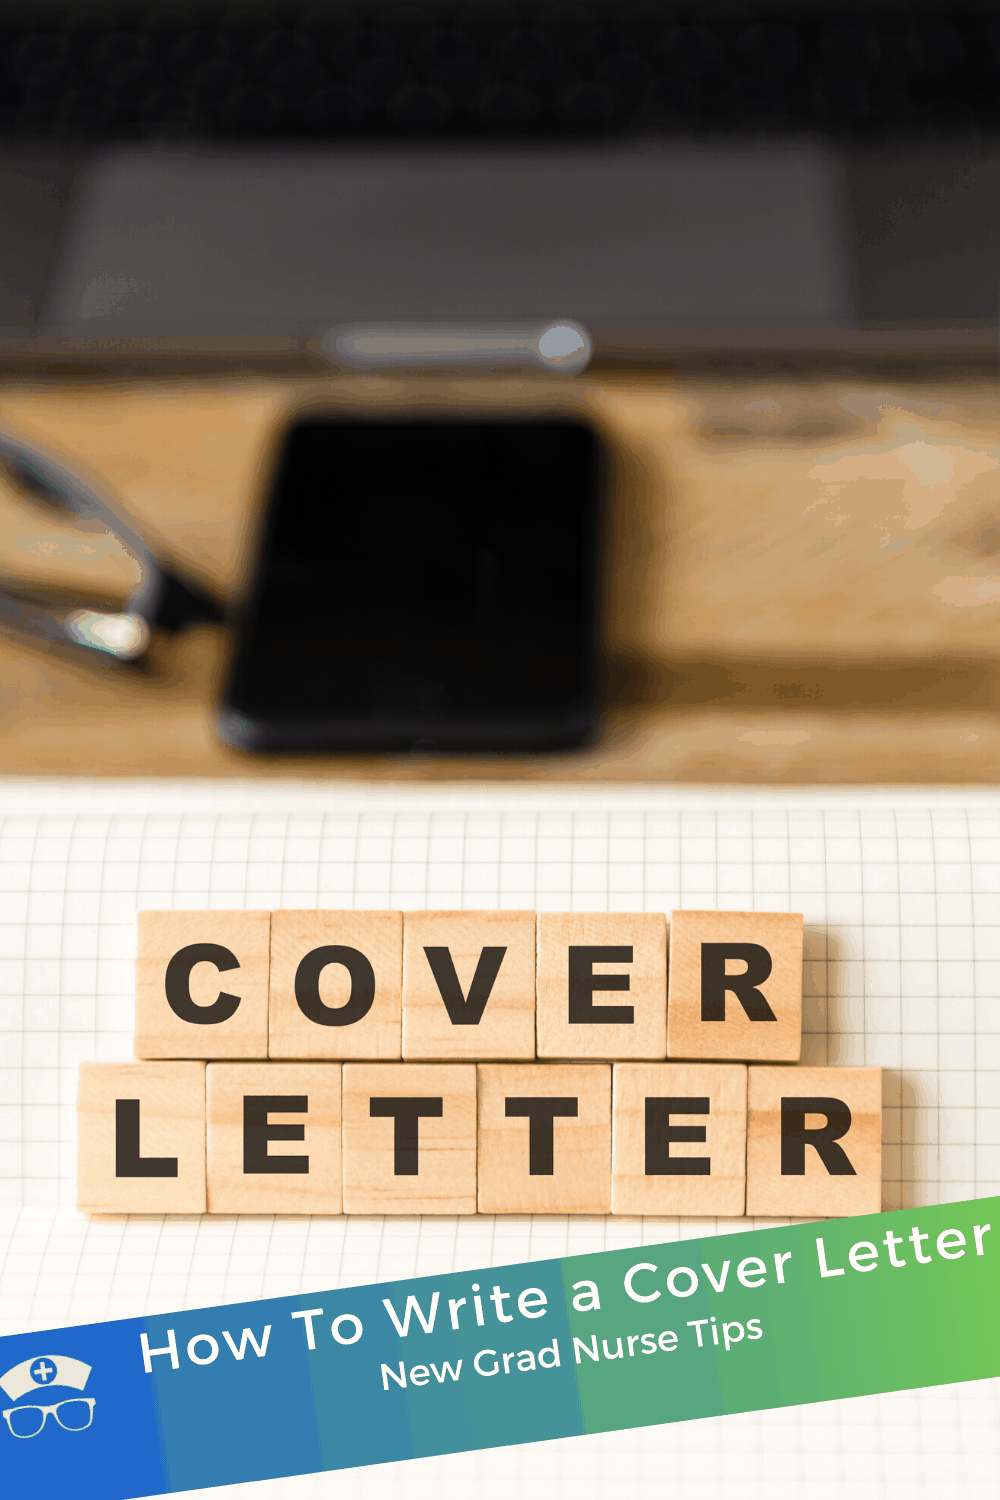 How To Write a Cover Letter New Grad Nurse Tips. In this guide, you'll learn what to include in your cover letter and how to write it. You'll also have access to example cover letters and templates. #thenerdynurse #nurse #nurses #coverletter #nurseresume #nursejobs #gettinghired